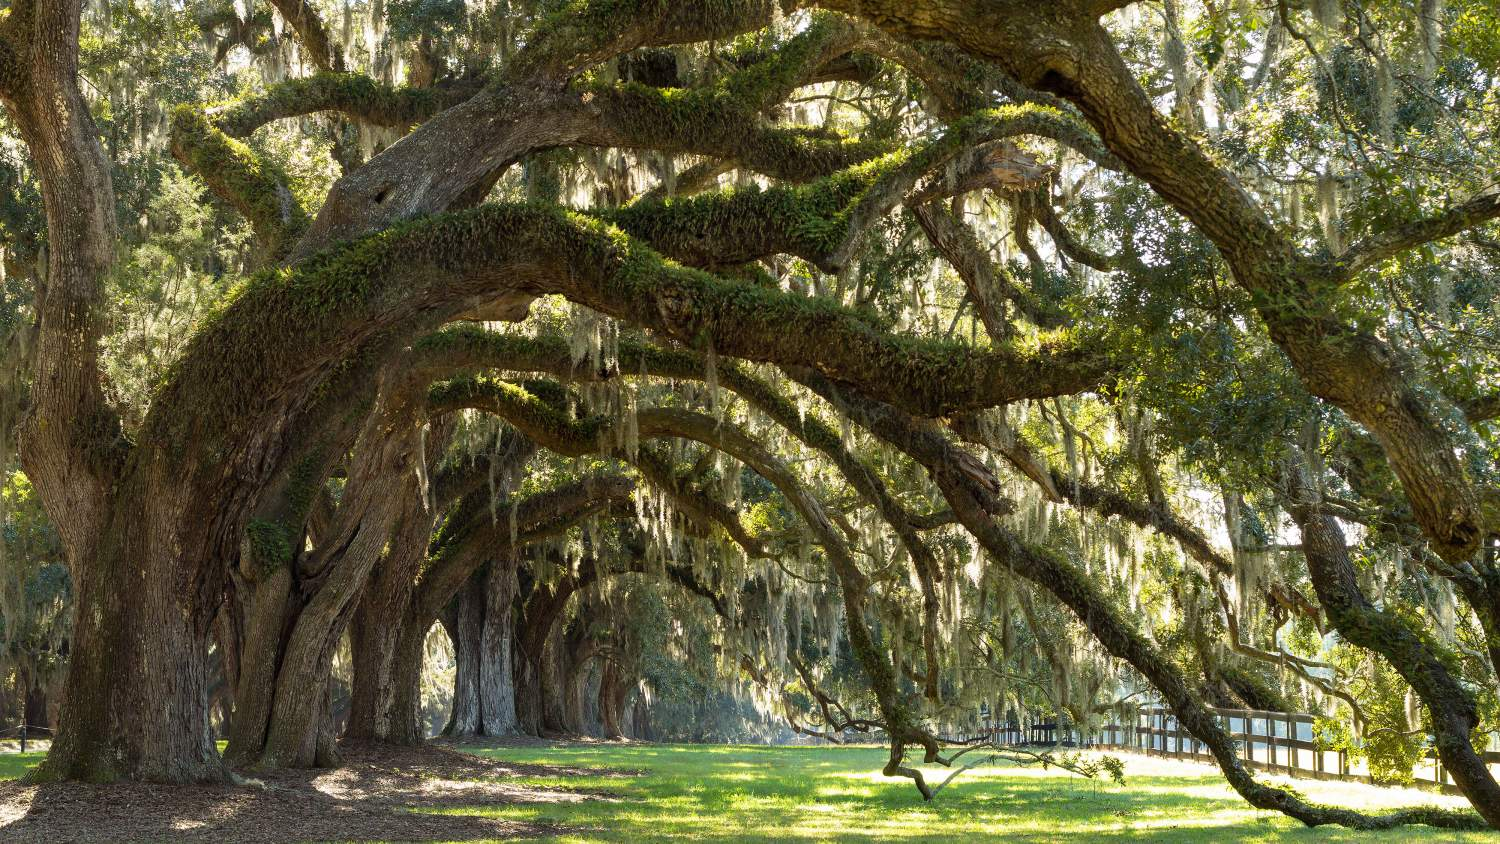 Southern gothic trees